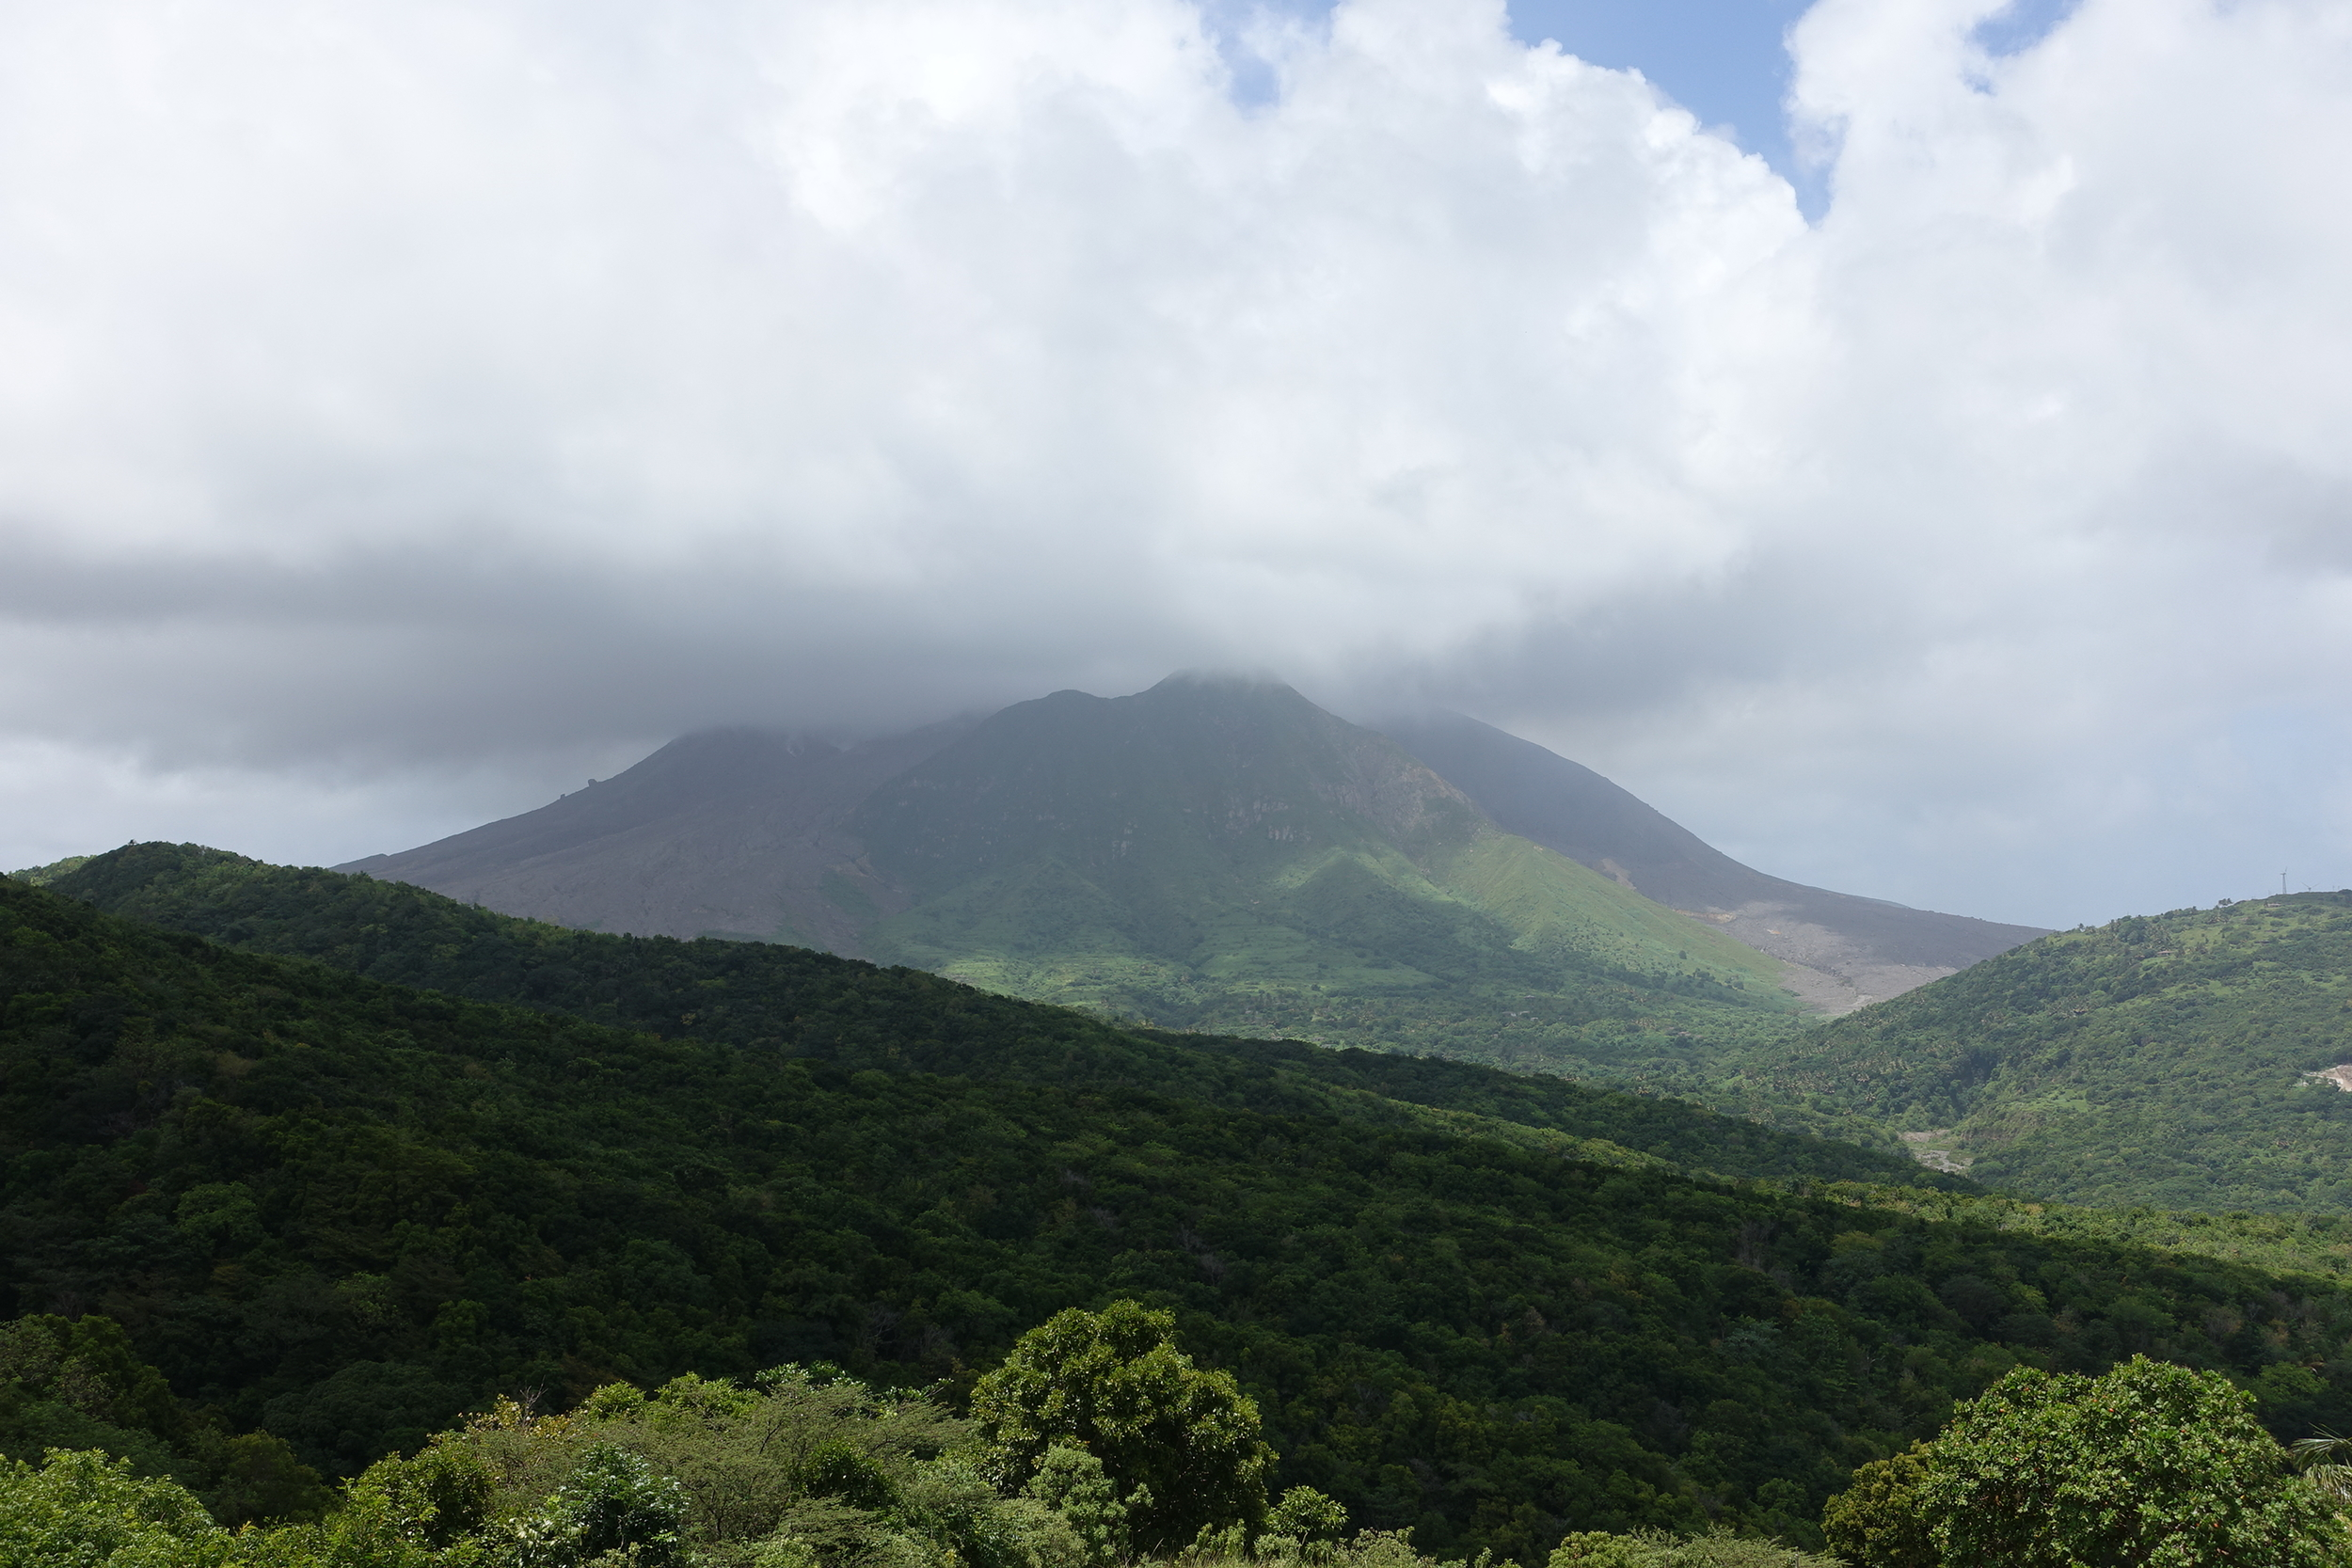 Soufriere hills volcano shrouded in clouds as seen from the Montserrat Volcano Observatory